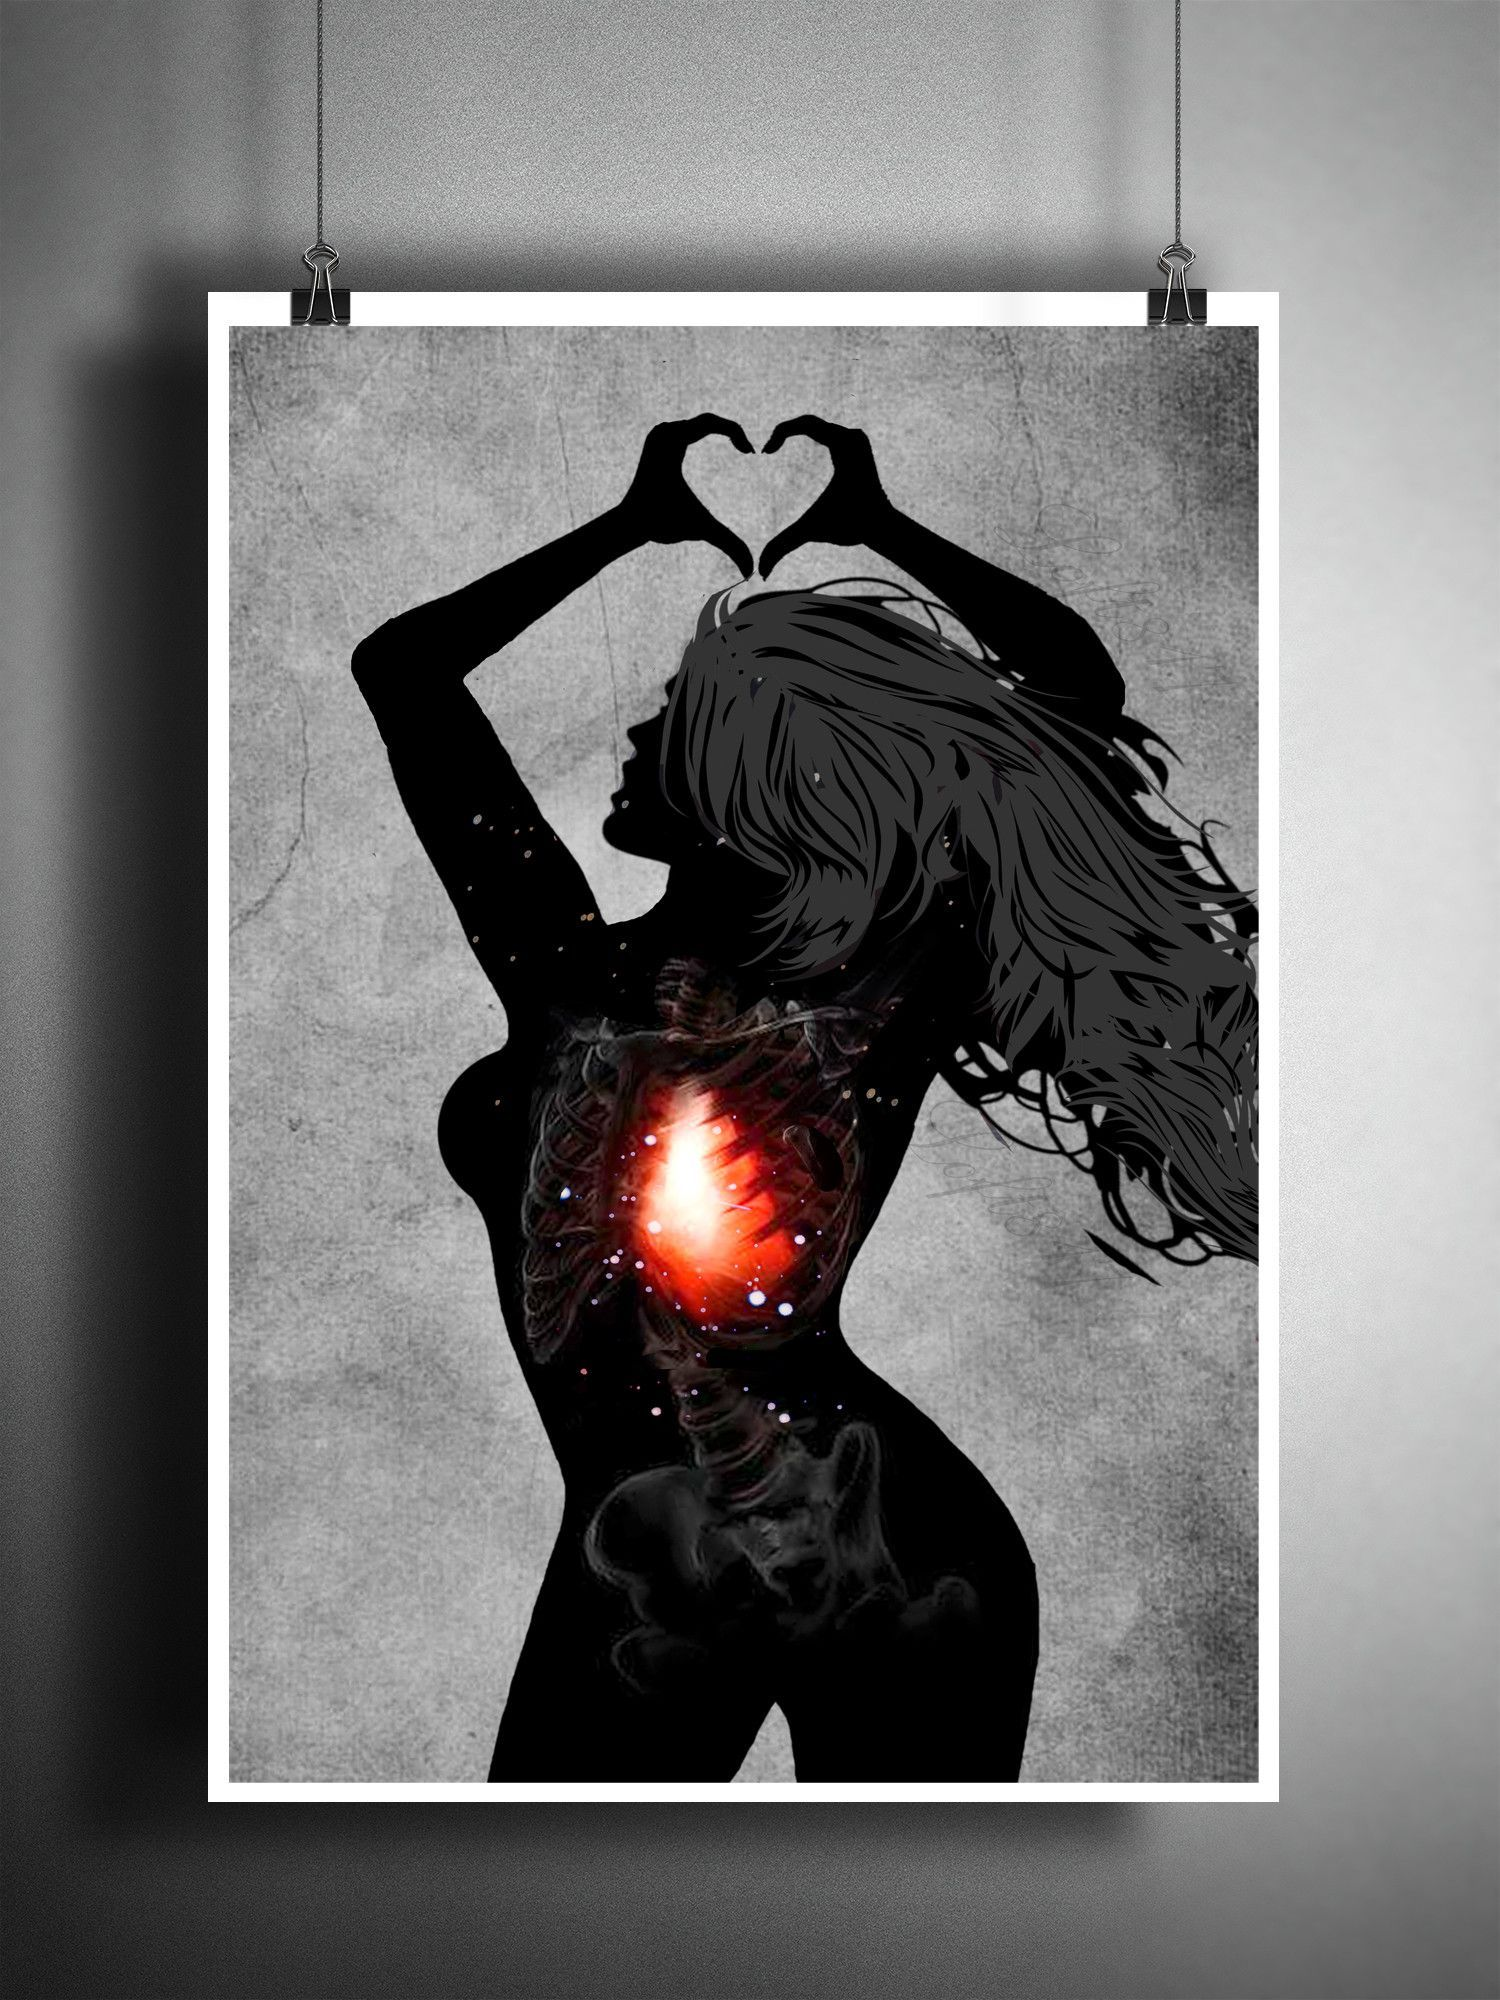 Star girl red heart silhouette heart hands female form art